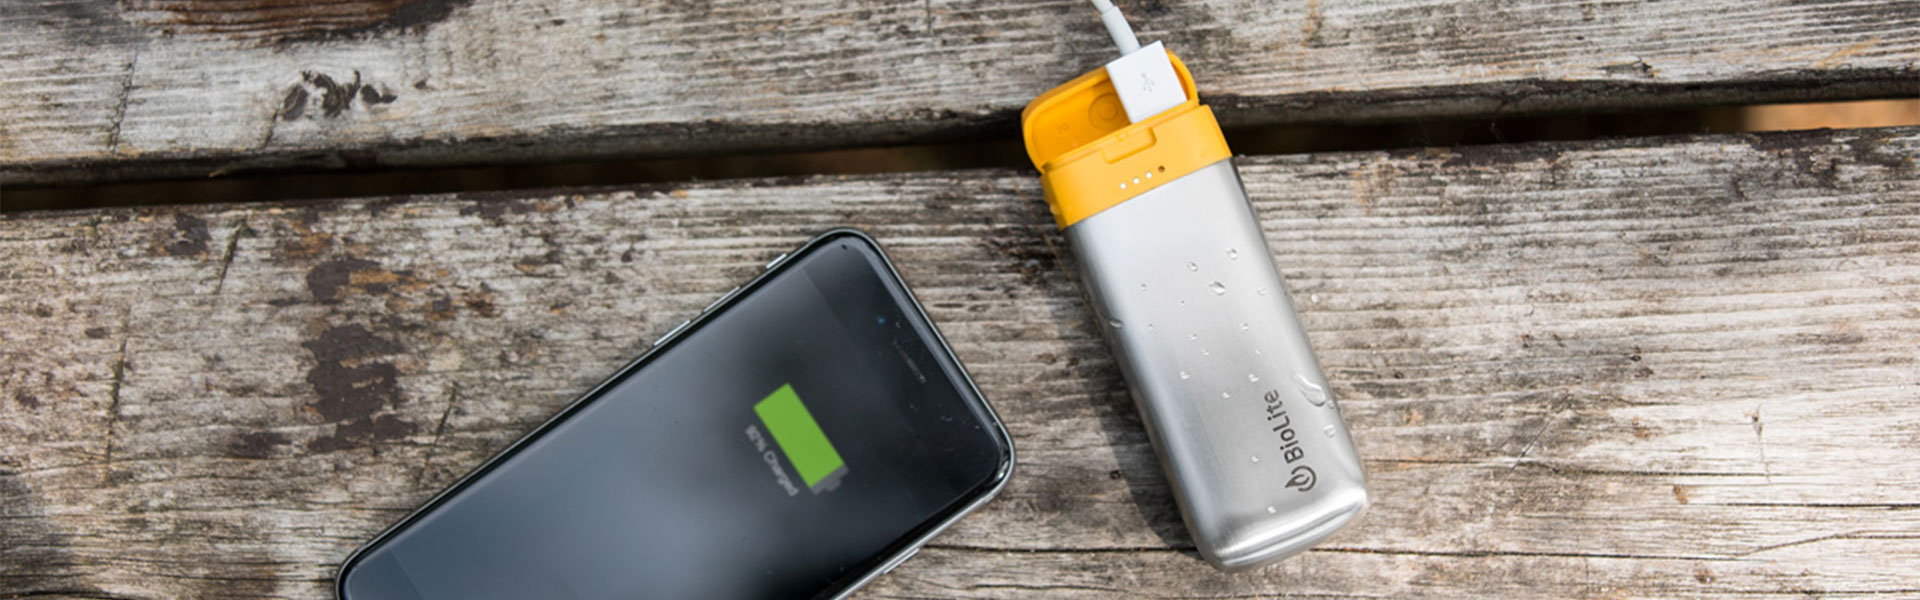 biolite power banks for erthical and sustainable corporate gifting